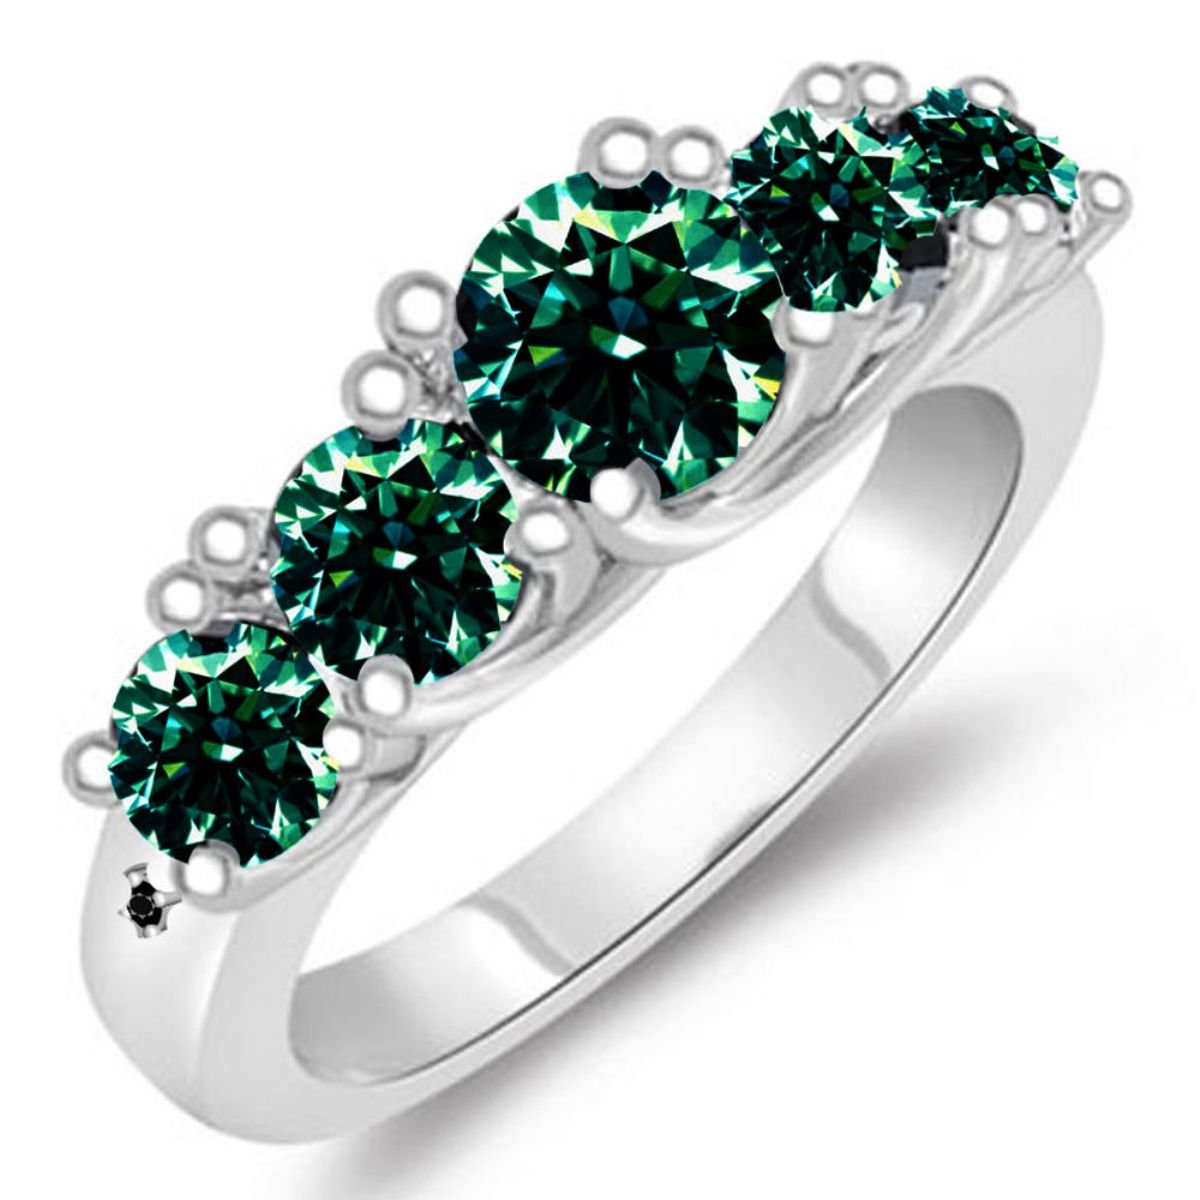 RINGJEWEL Silver Plated Moissanite Engagement Ring (4.40 ct,SI1,Round-Cut,White Green Color,Size 7).